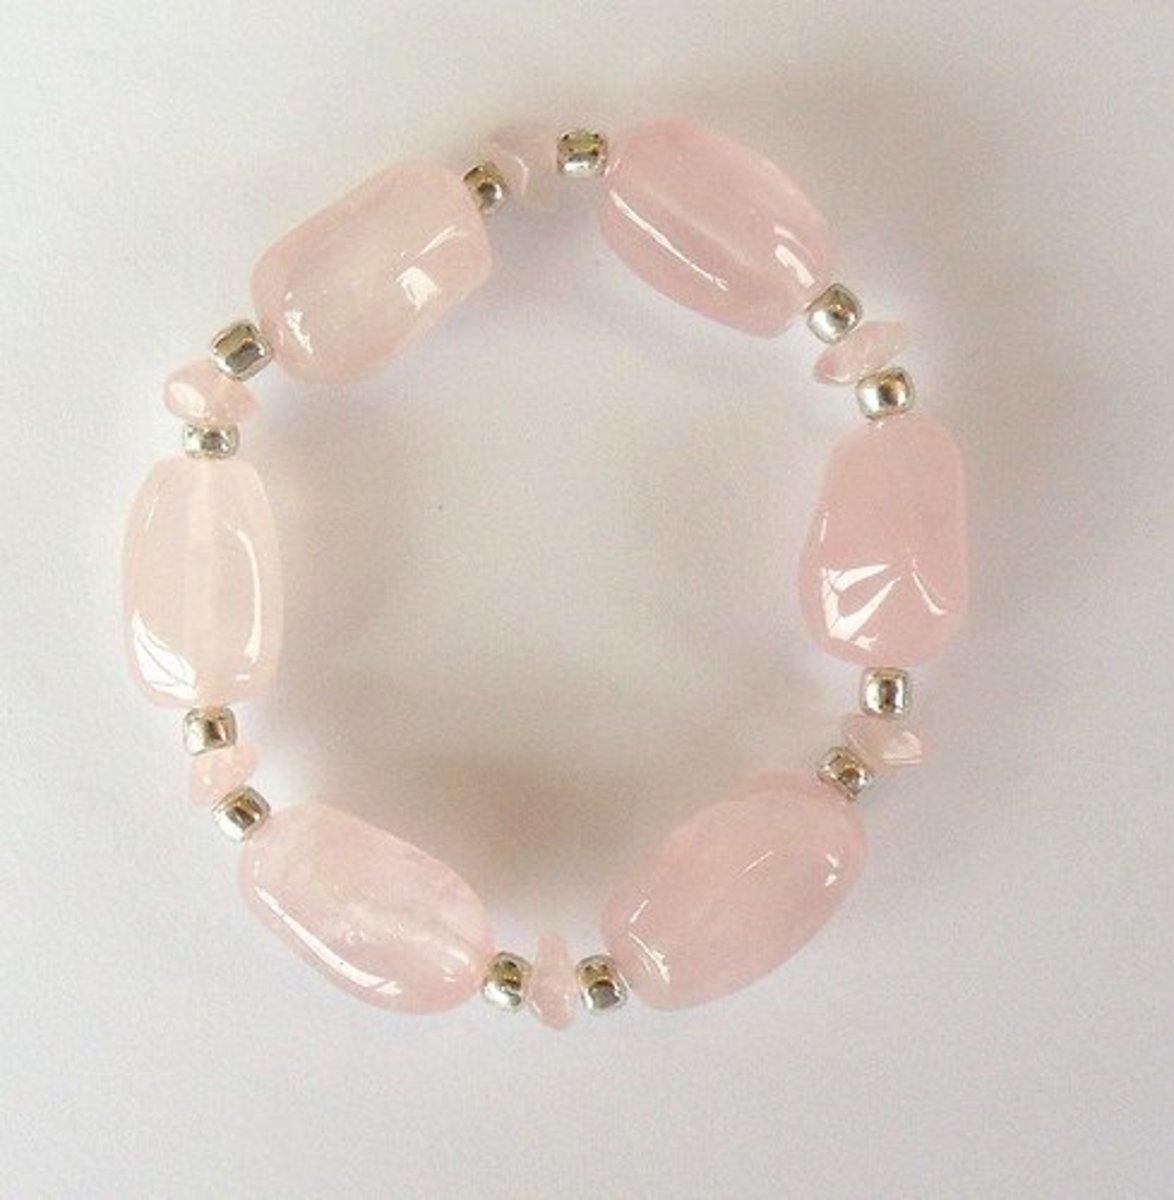 Wearing rose quartz jewelry is a fashionable and convenient way to attract the energy of the crystal.